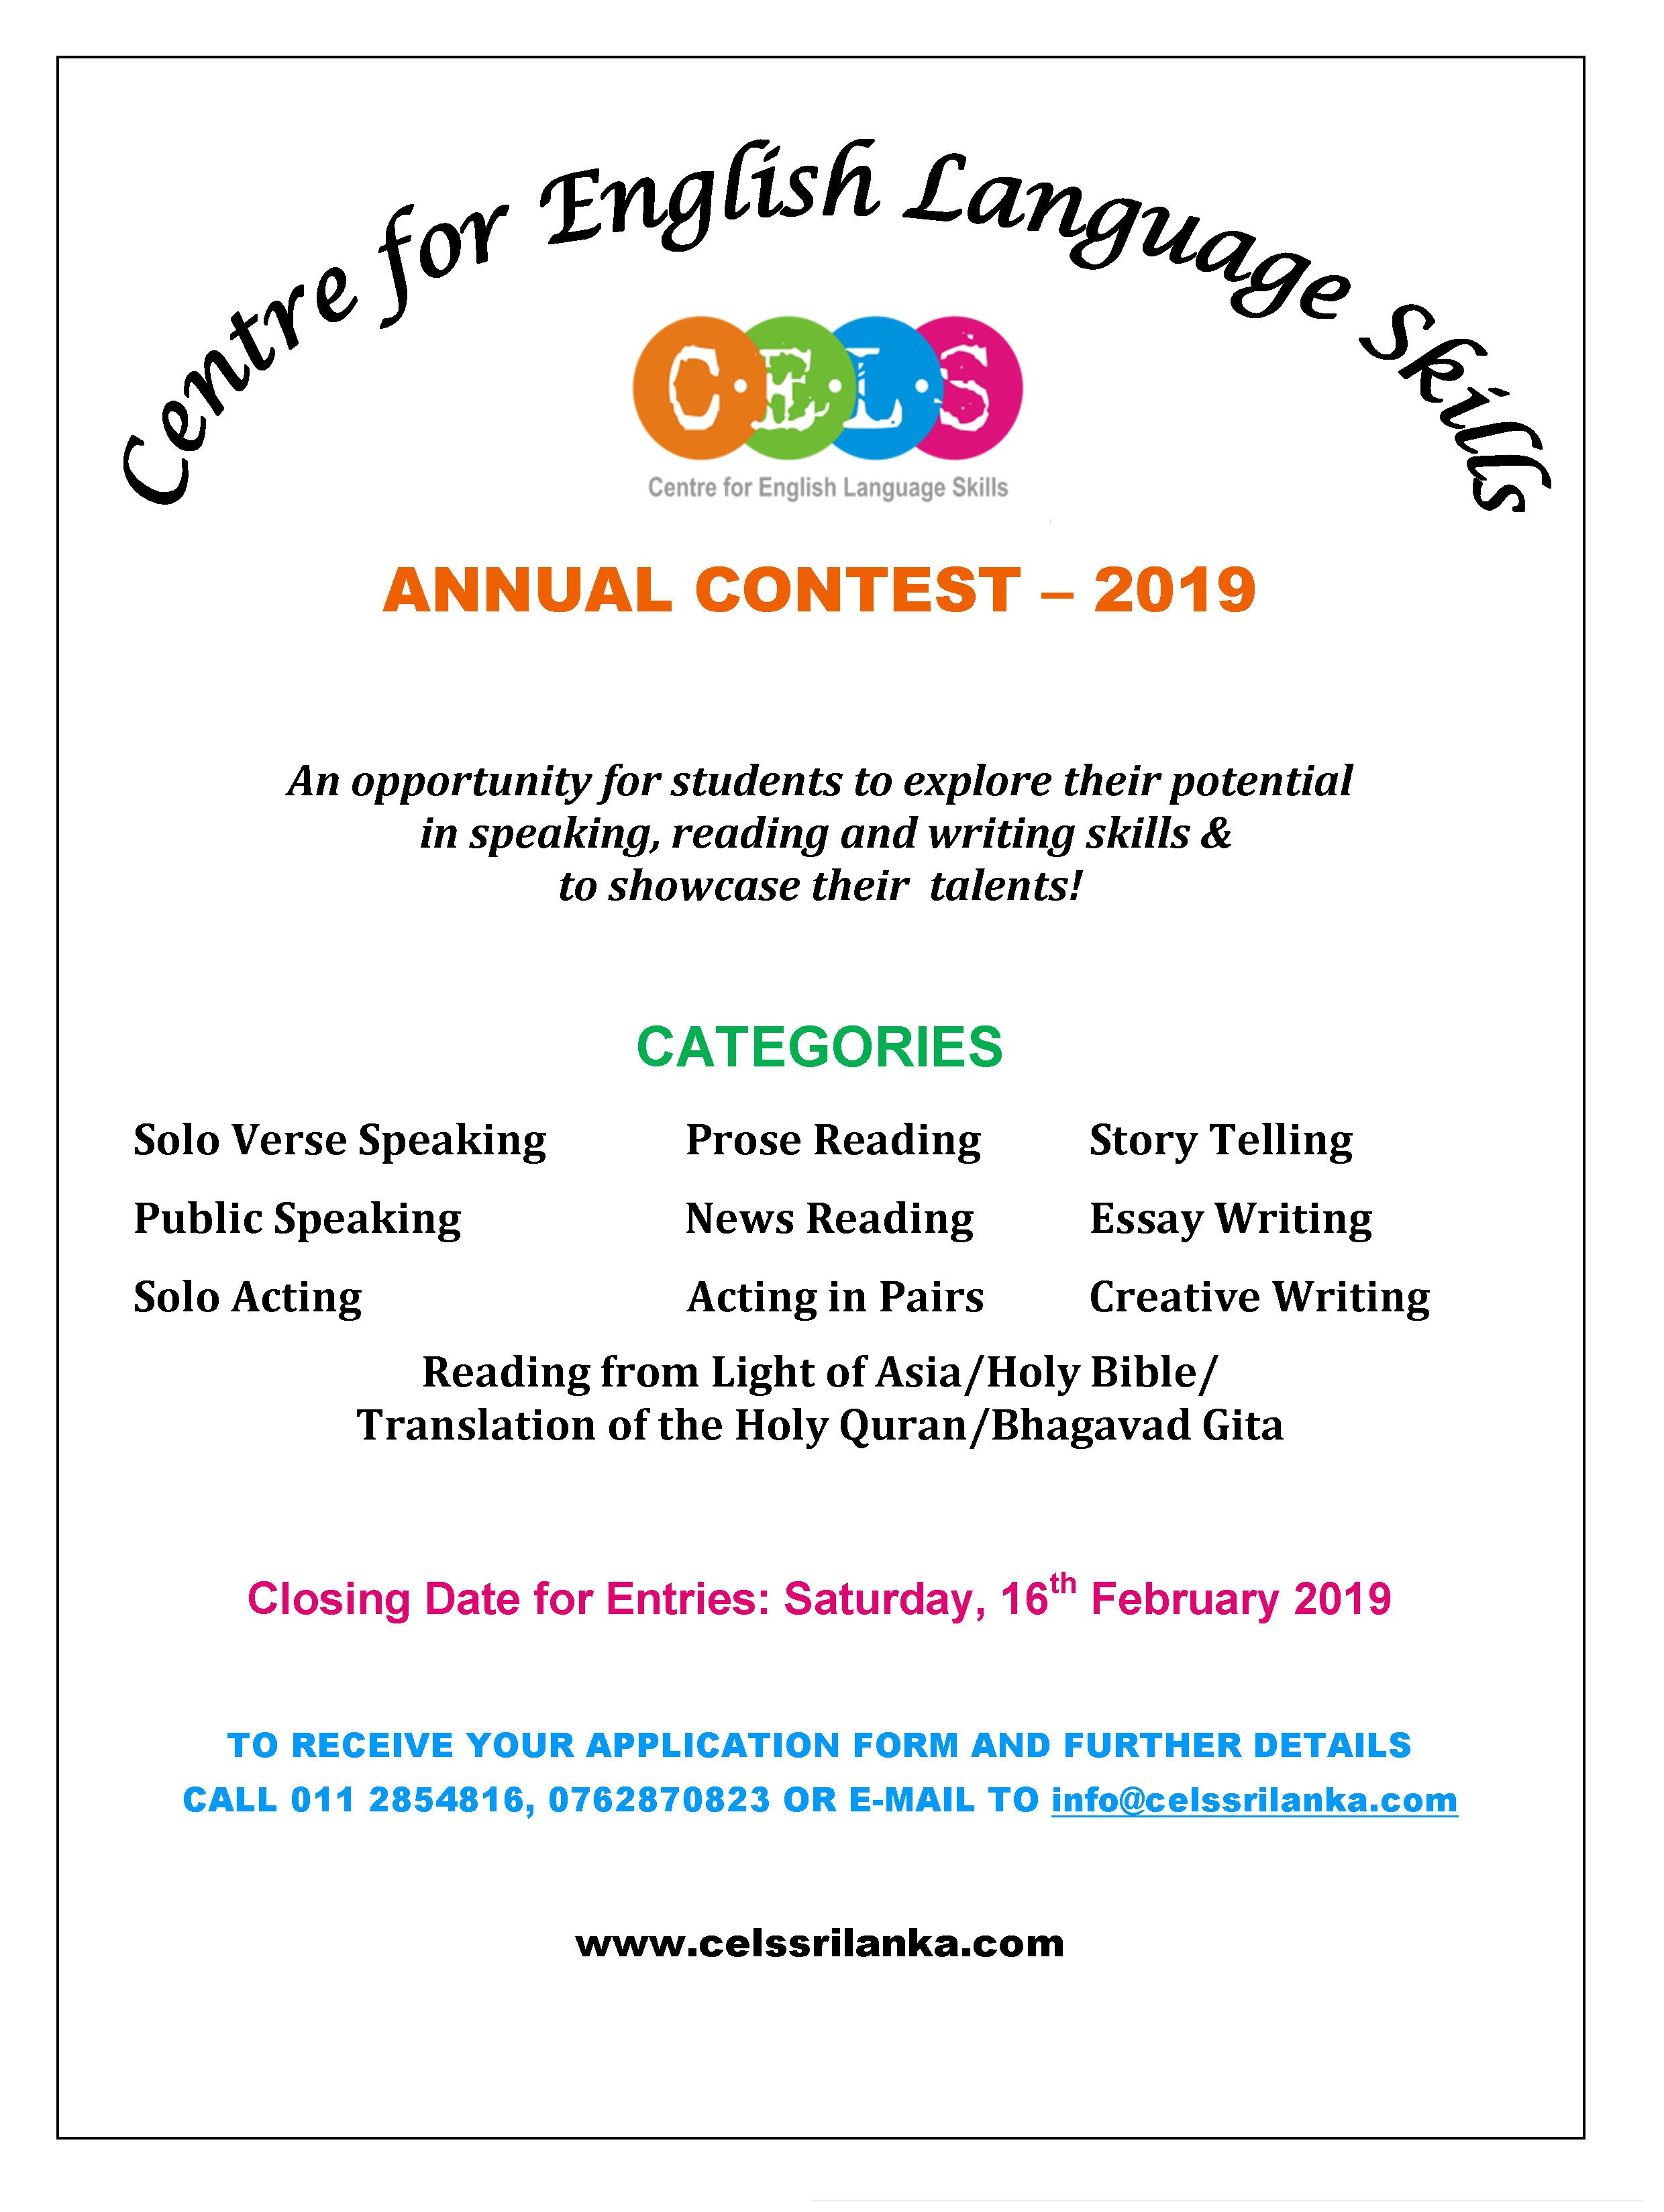 CELS Annual Contest 2019 for website